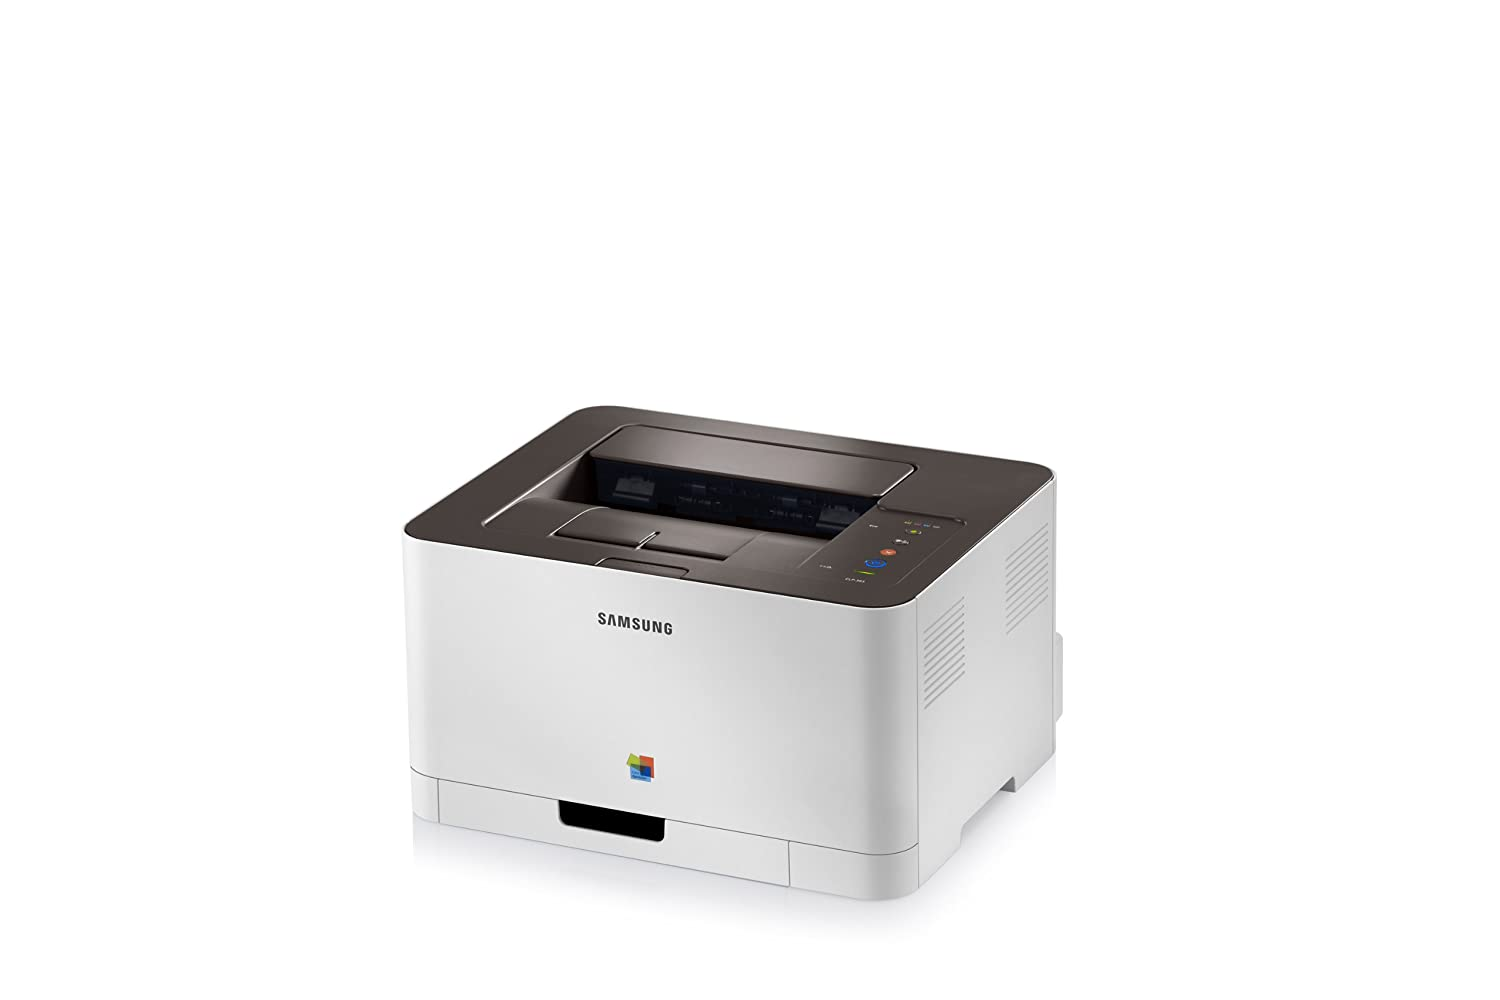 Amazon.com: Samsung Clp-365 Colour Laser Printer: Electronics